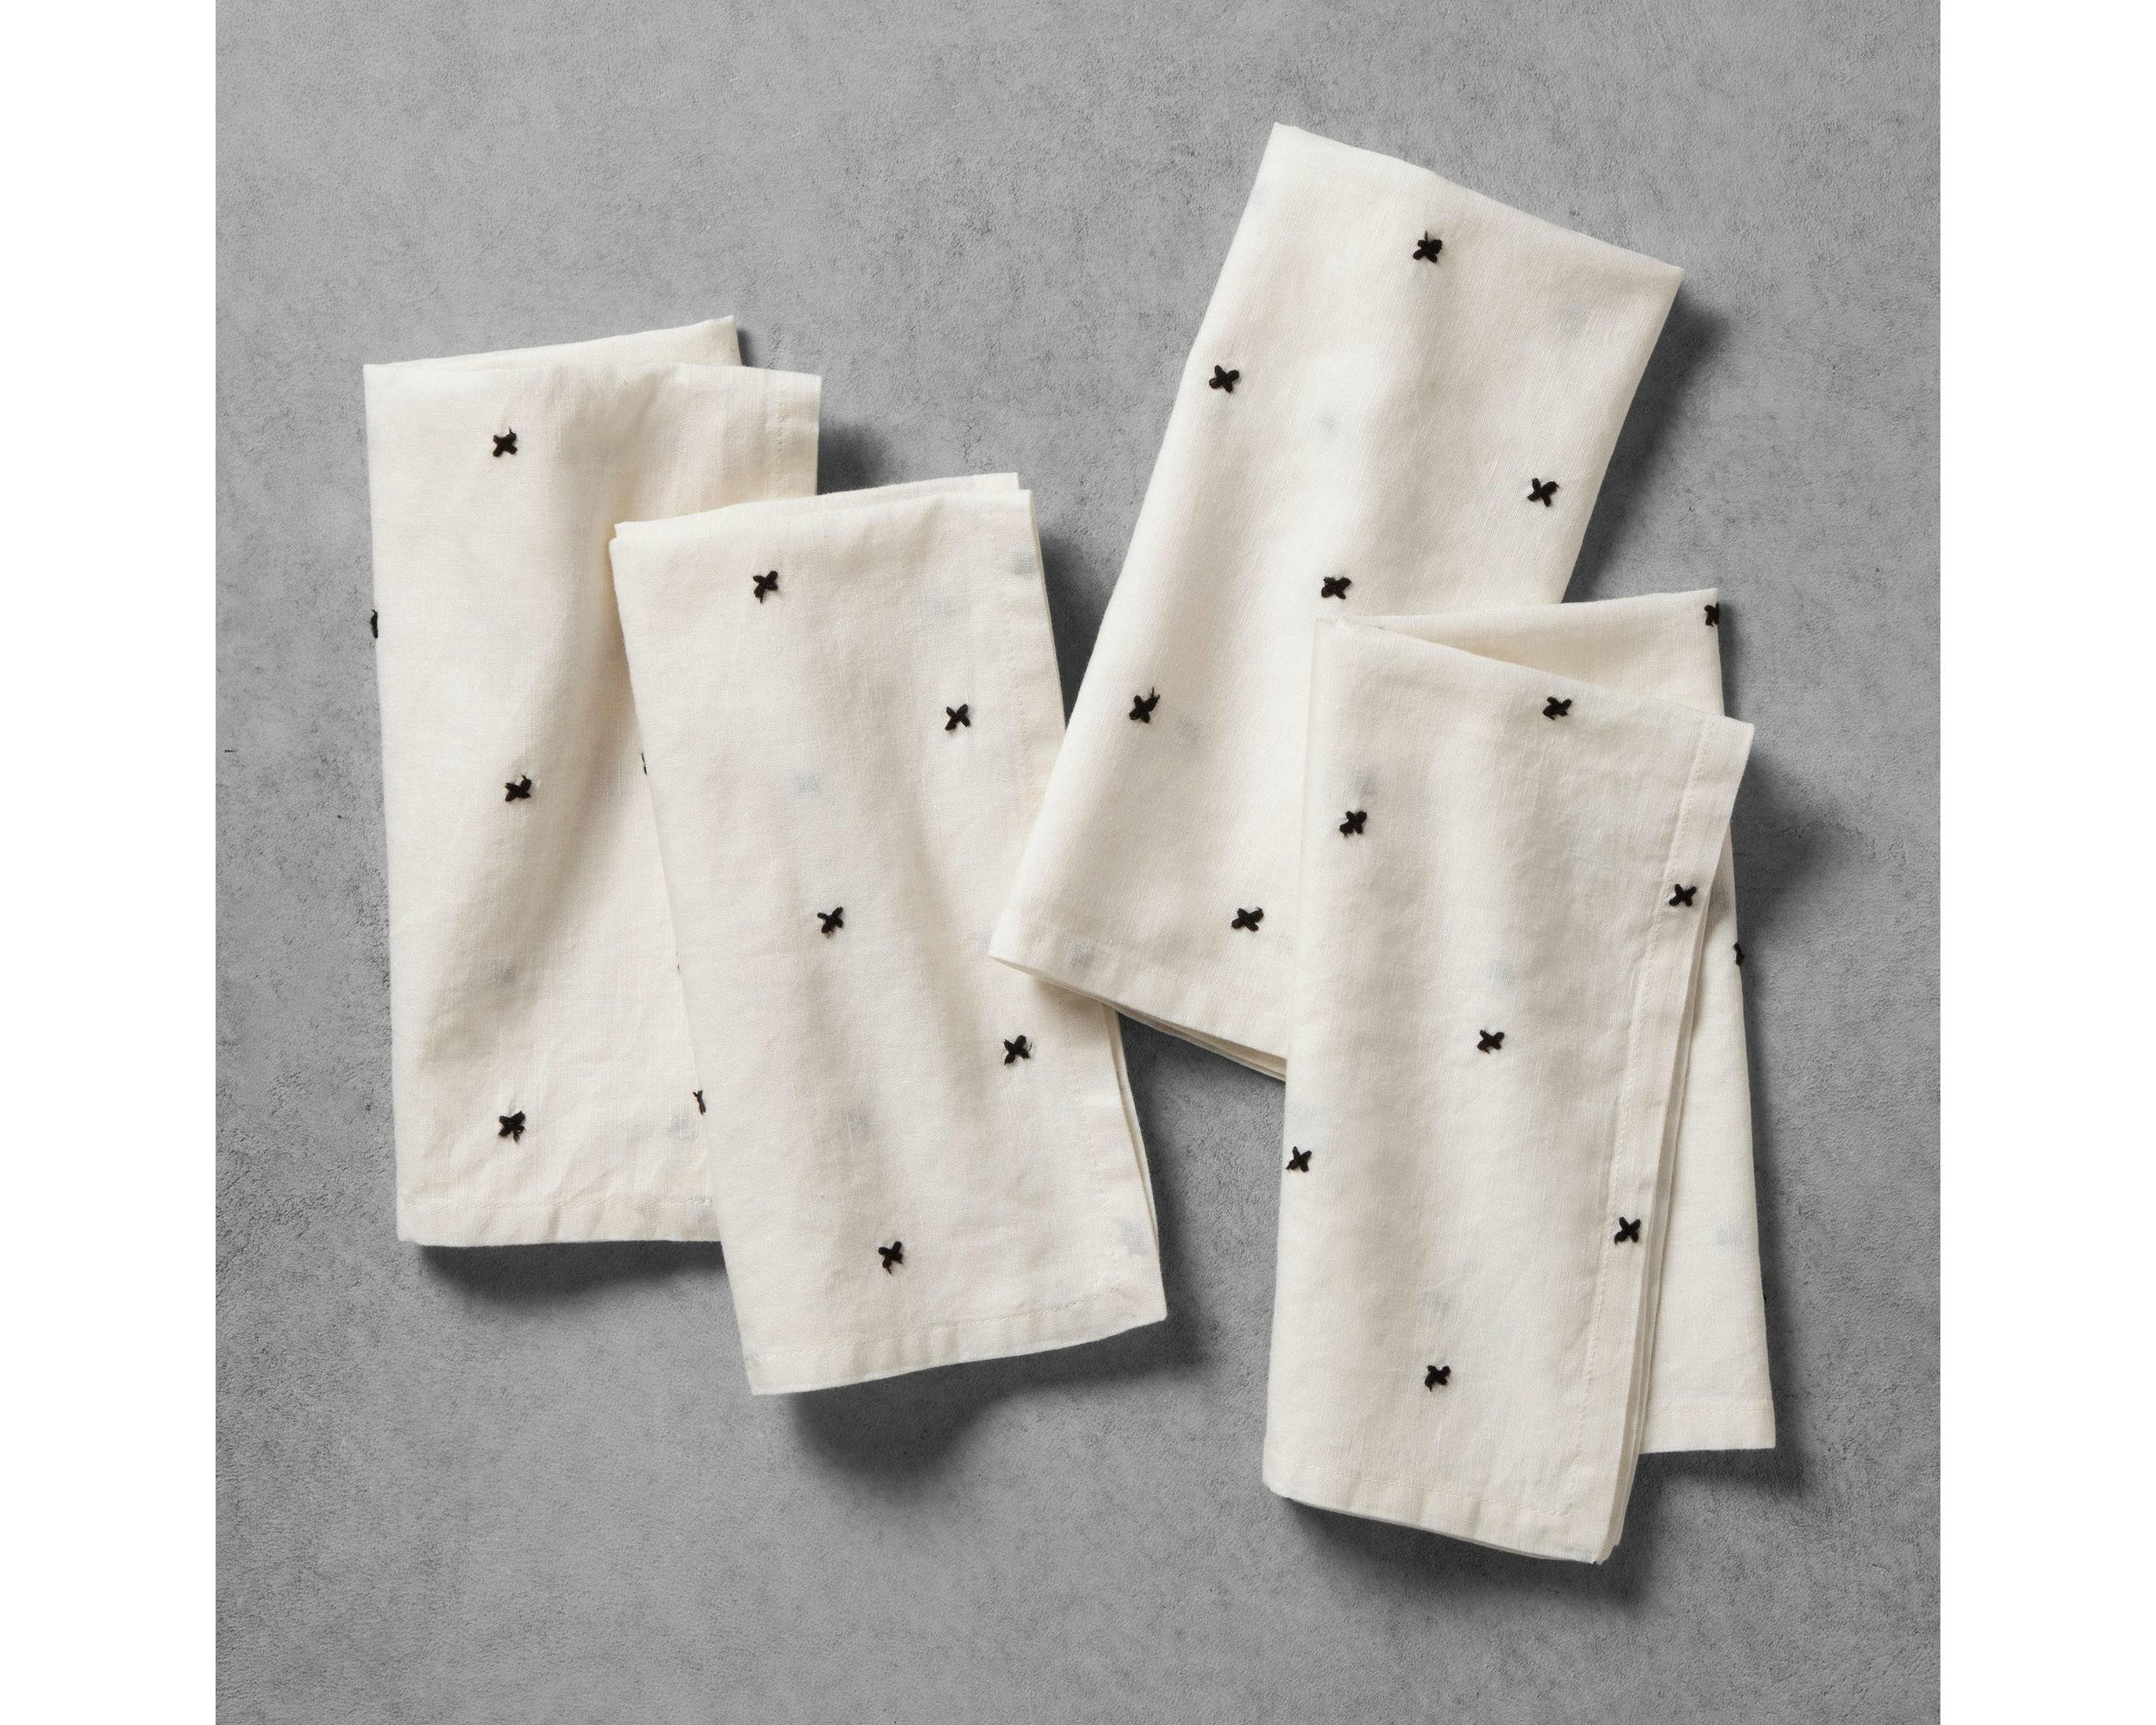 X Cream Napkins - Mix and Match with the striped napkins for a more farmhouse look.